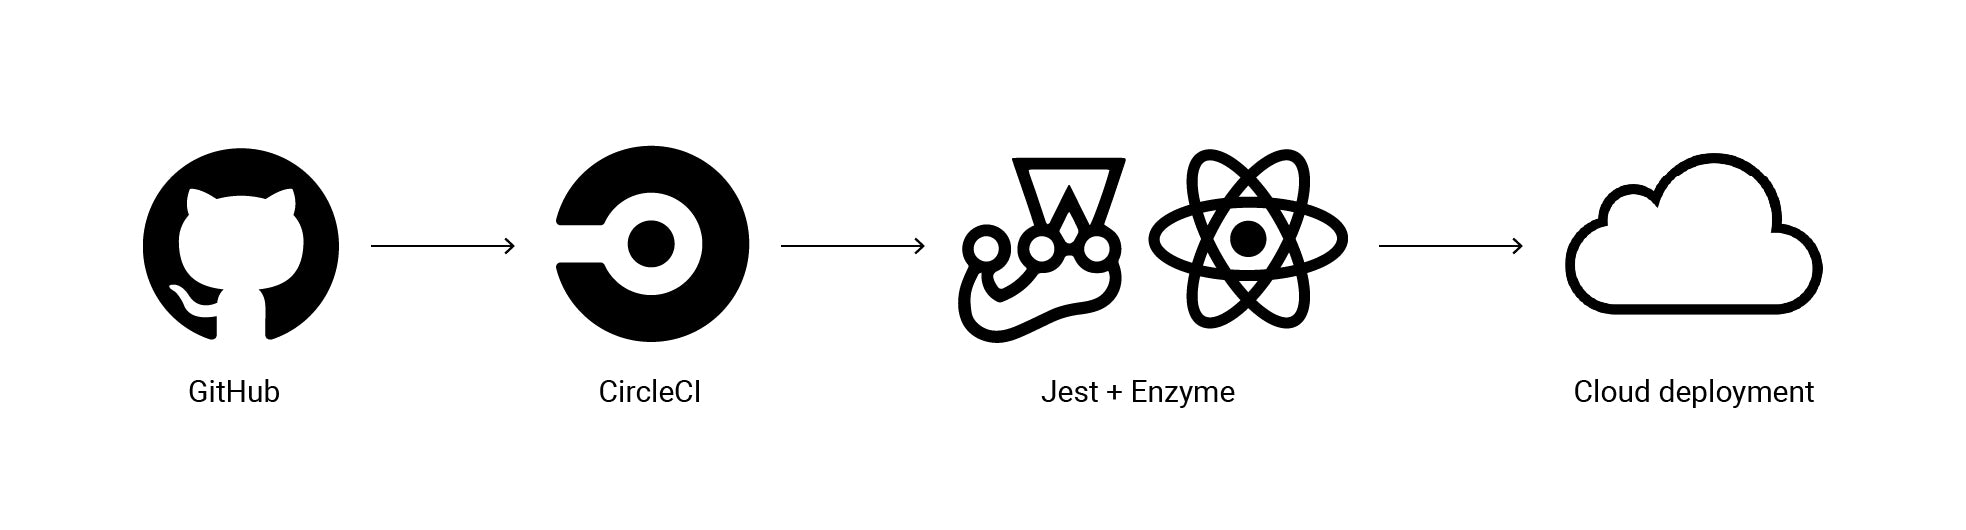 Continuous integration with Jest and Enzyme graphic